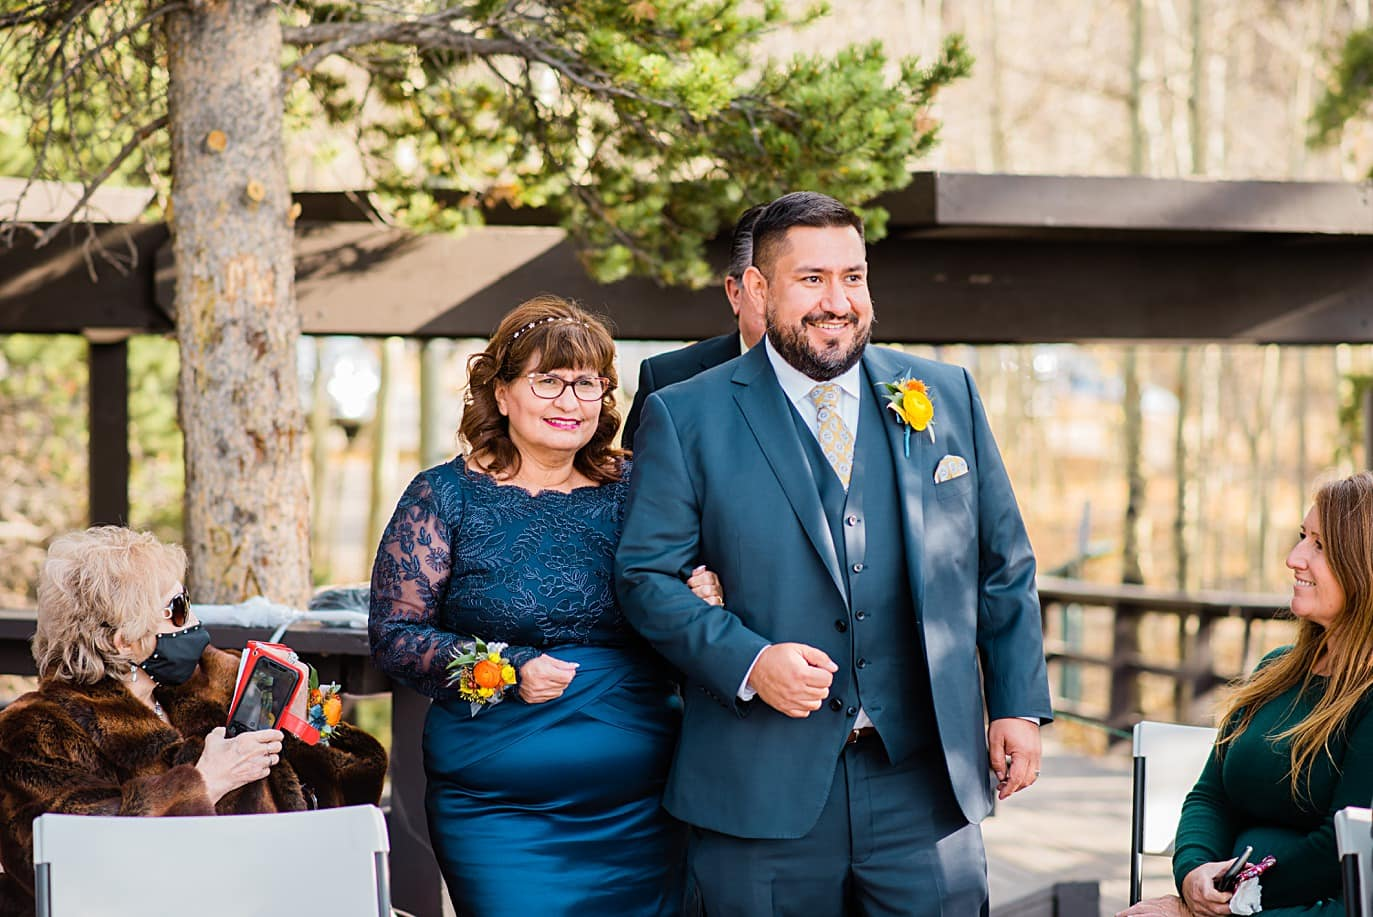 groom and mom walk down aisle at Golden Gate Canyon wedding by Golden wedding photographer Jennie Crate